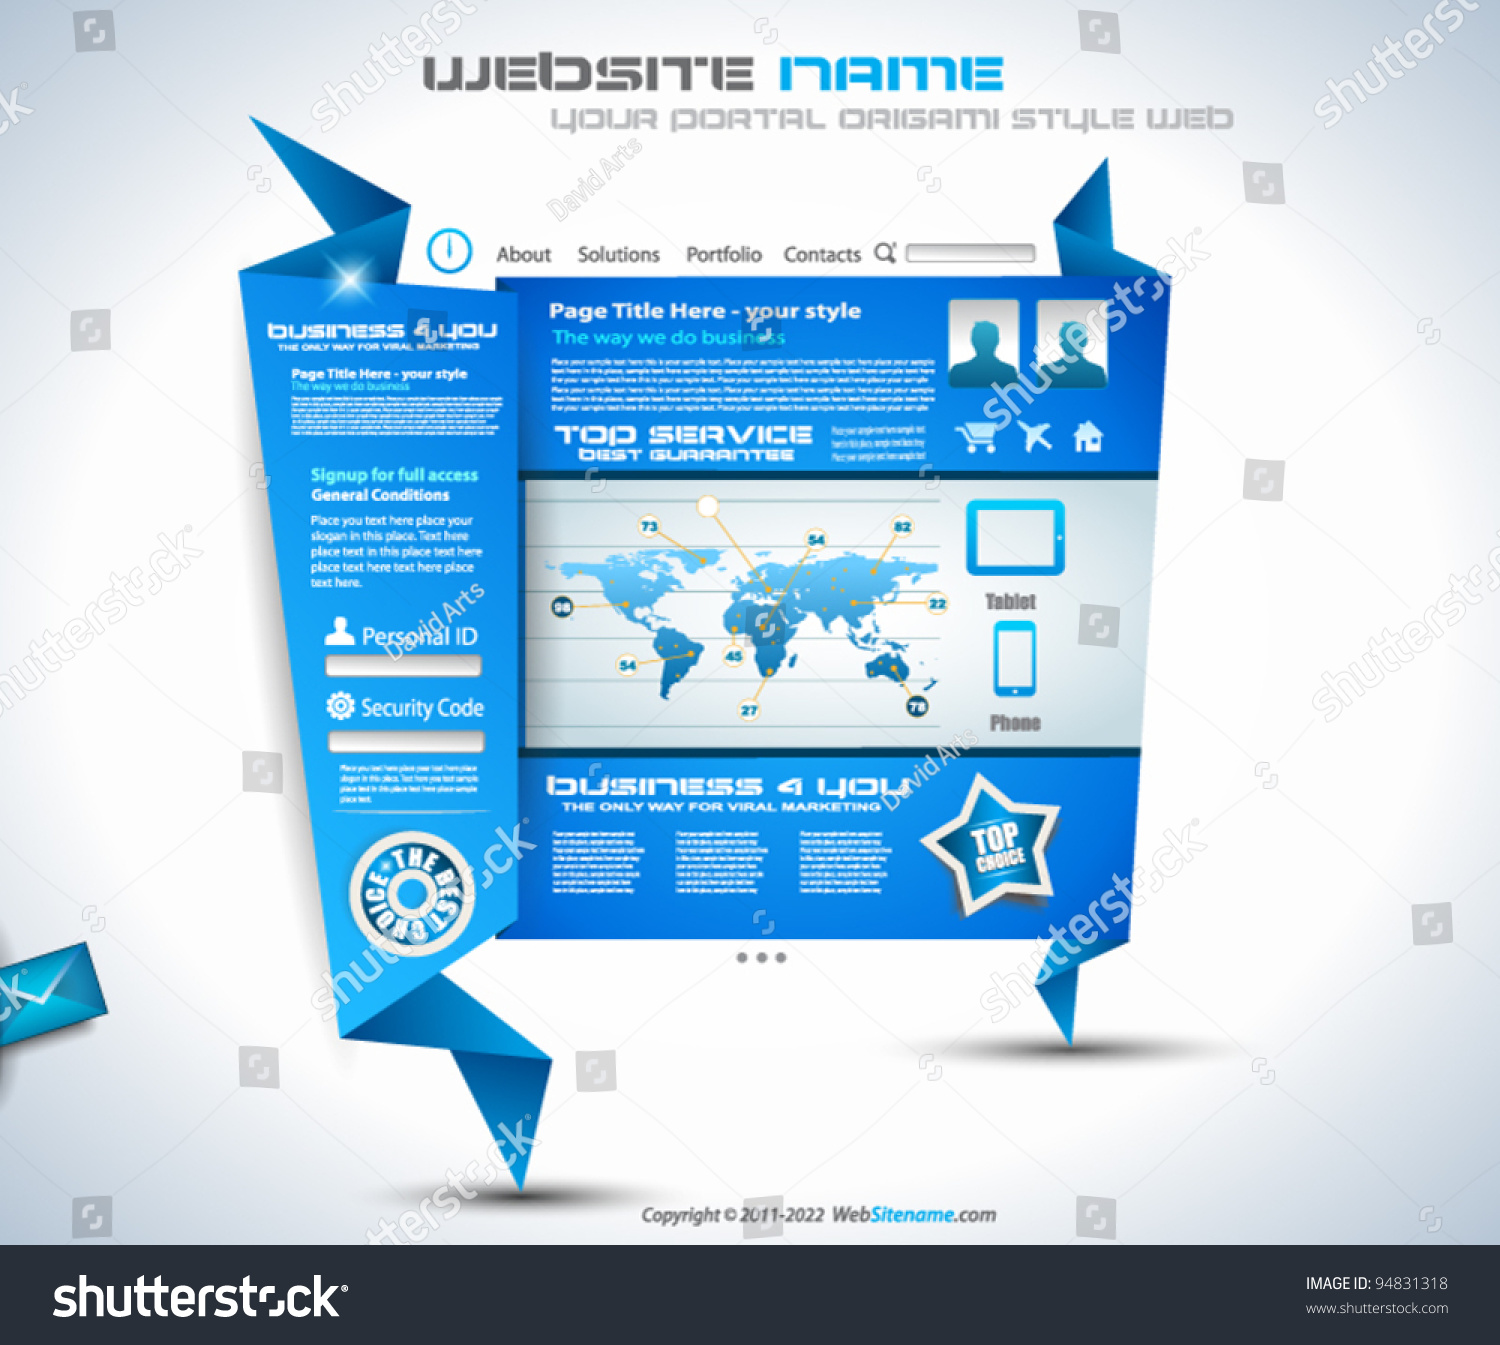 Origami Website  Elegant Design For Business. What Is Telematics System Web Deployment Tool. Short Term Health Insurance Maryland. What Are The Chances Of Getting Pregnant While Breastfeeding. University Of Florida Apply Online